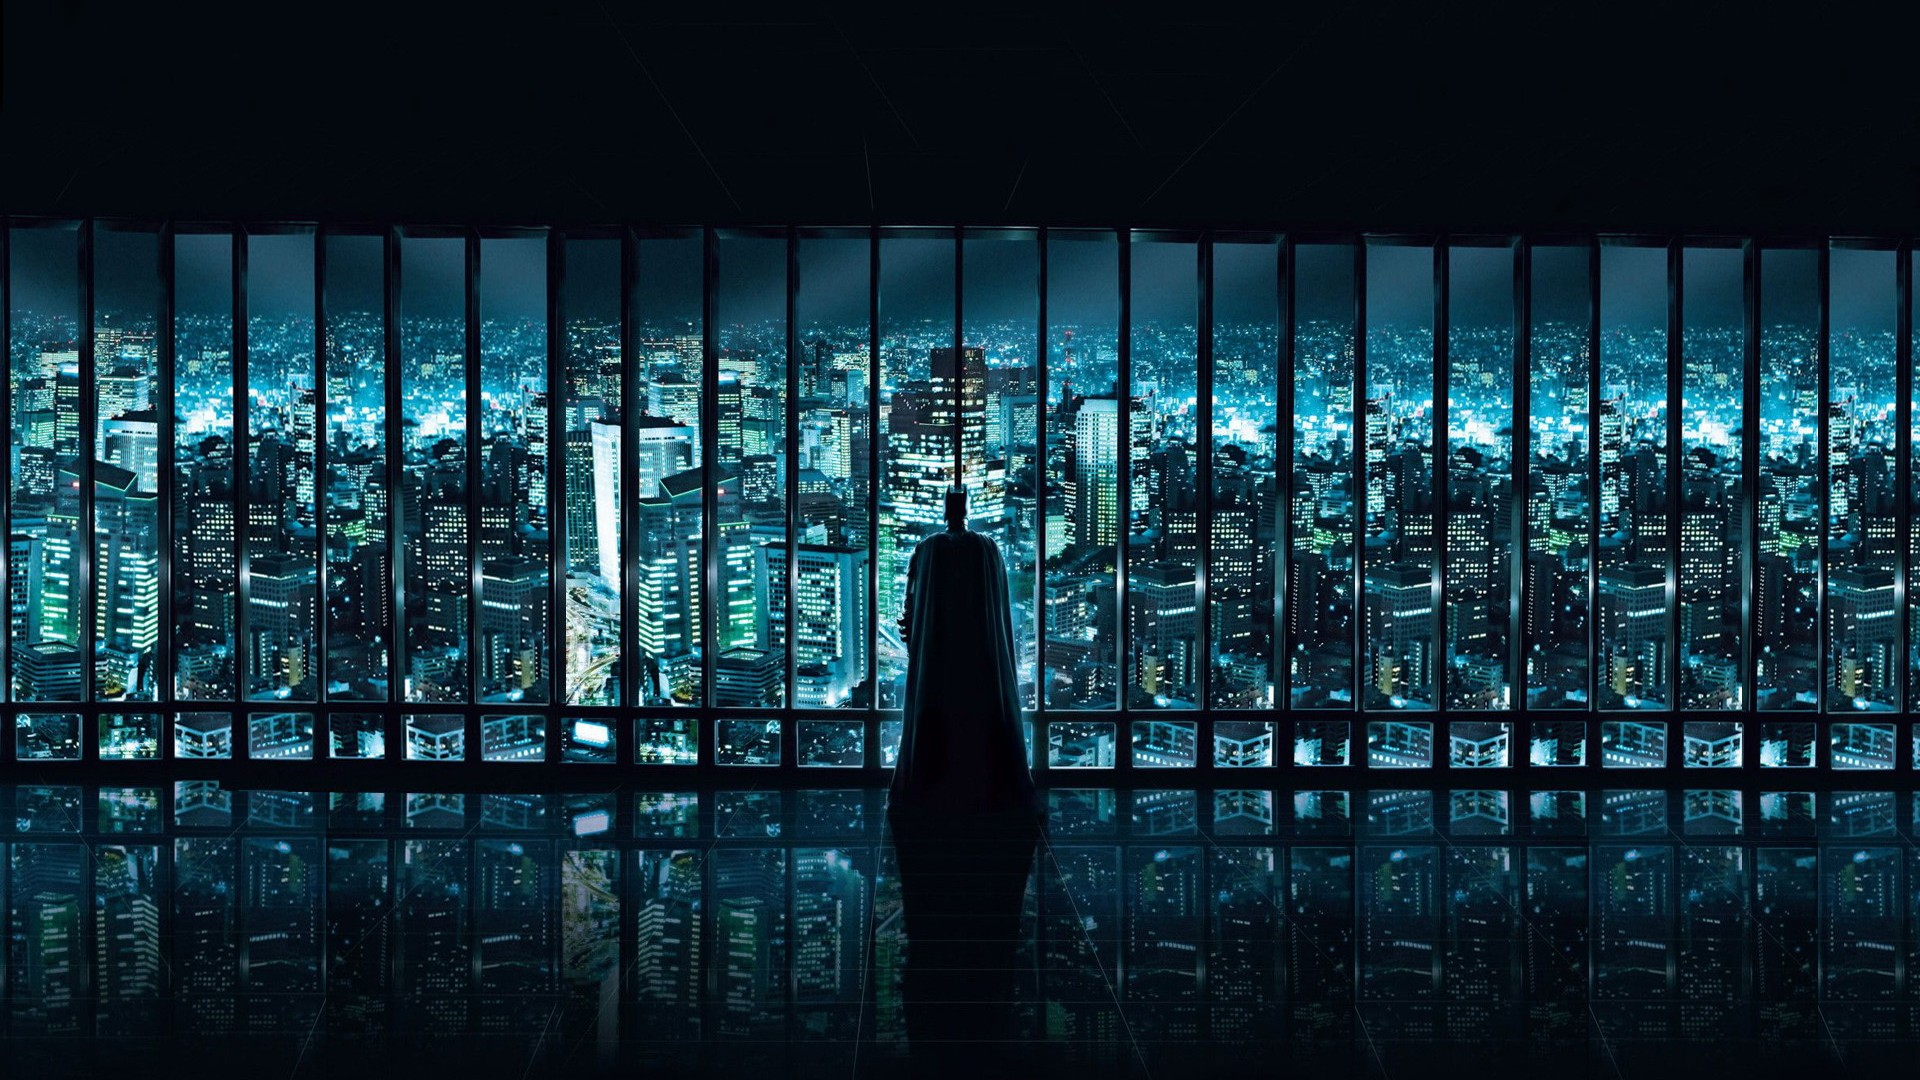 Dark Knight Wallpaper Hd Images amp Pictures   Becuo 1920x1080